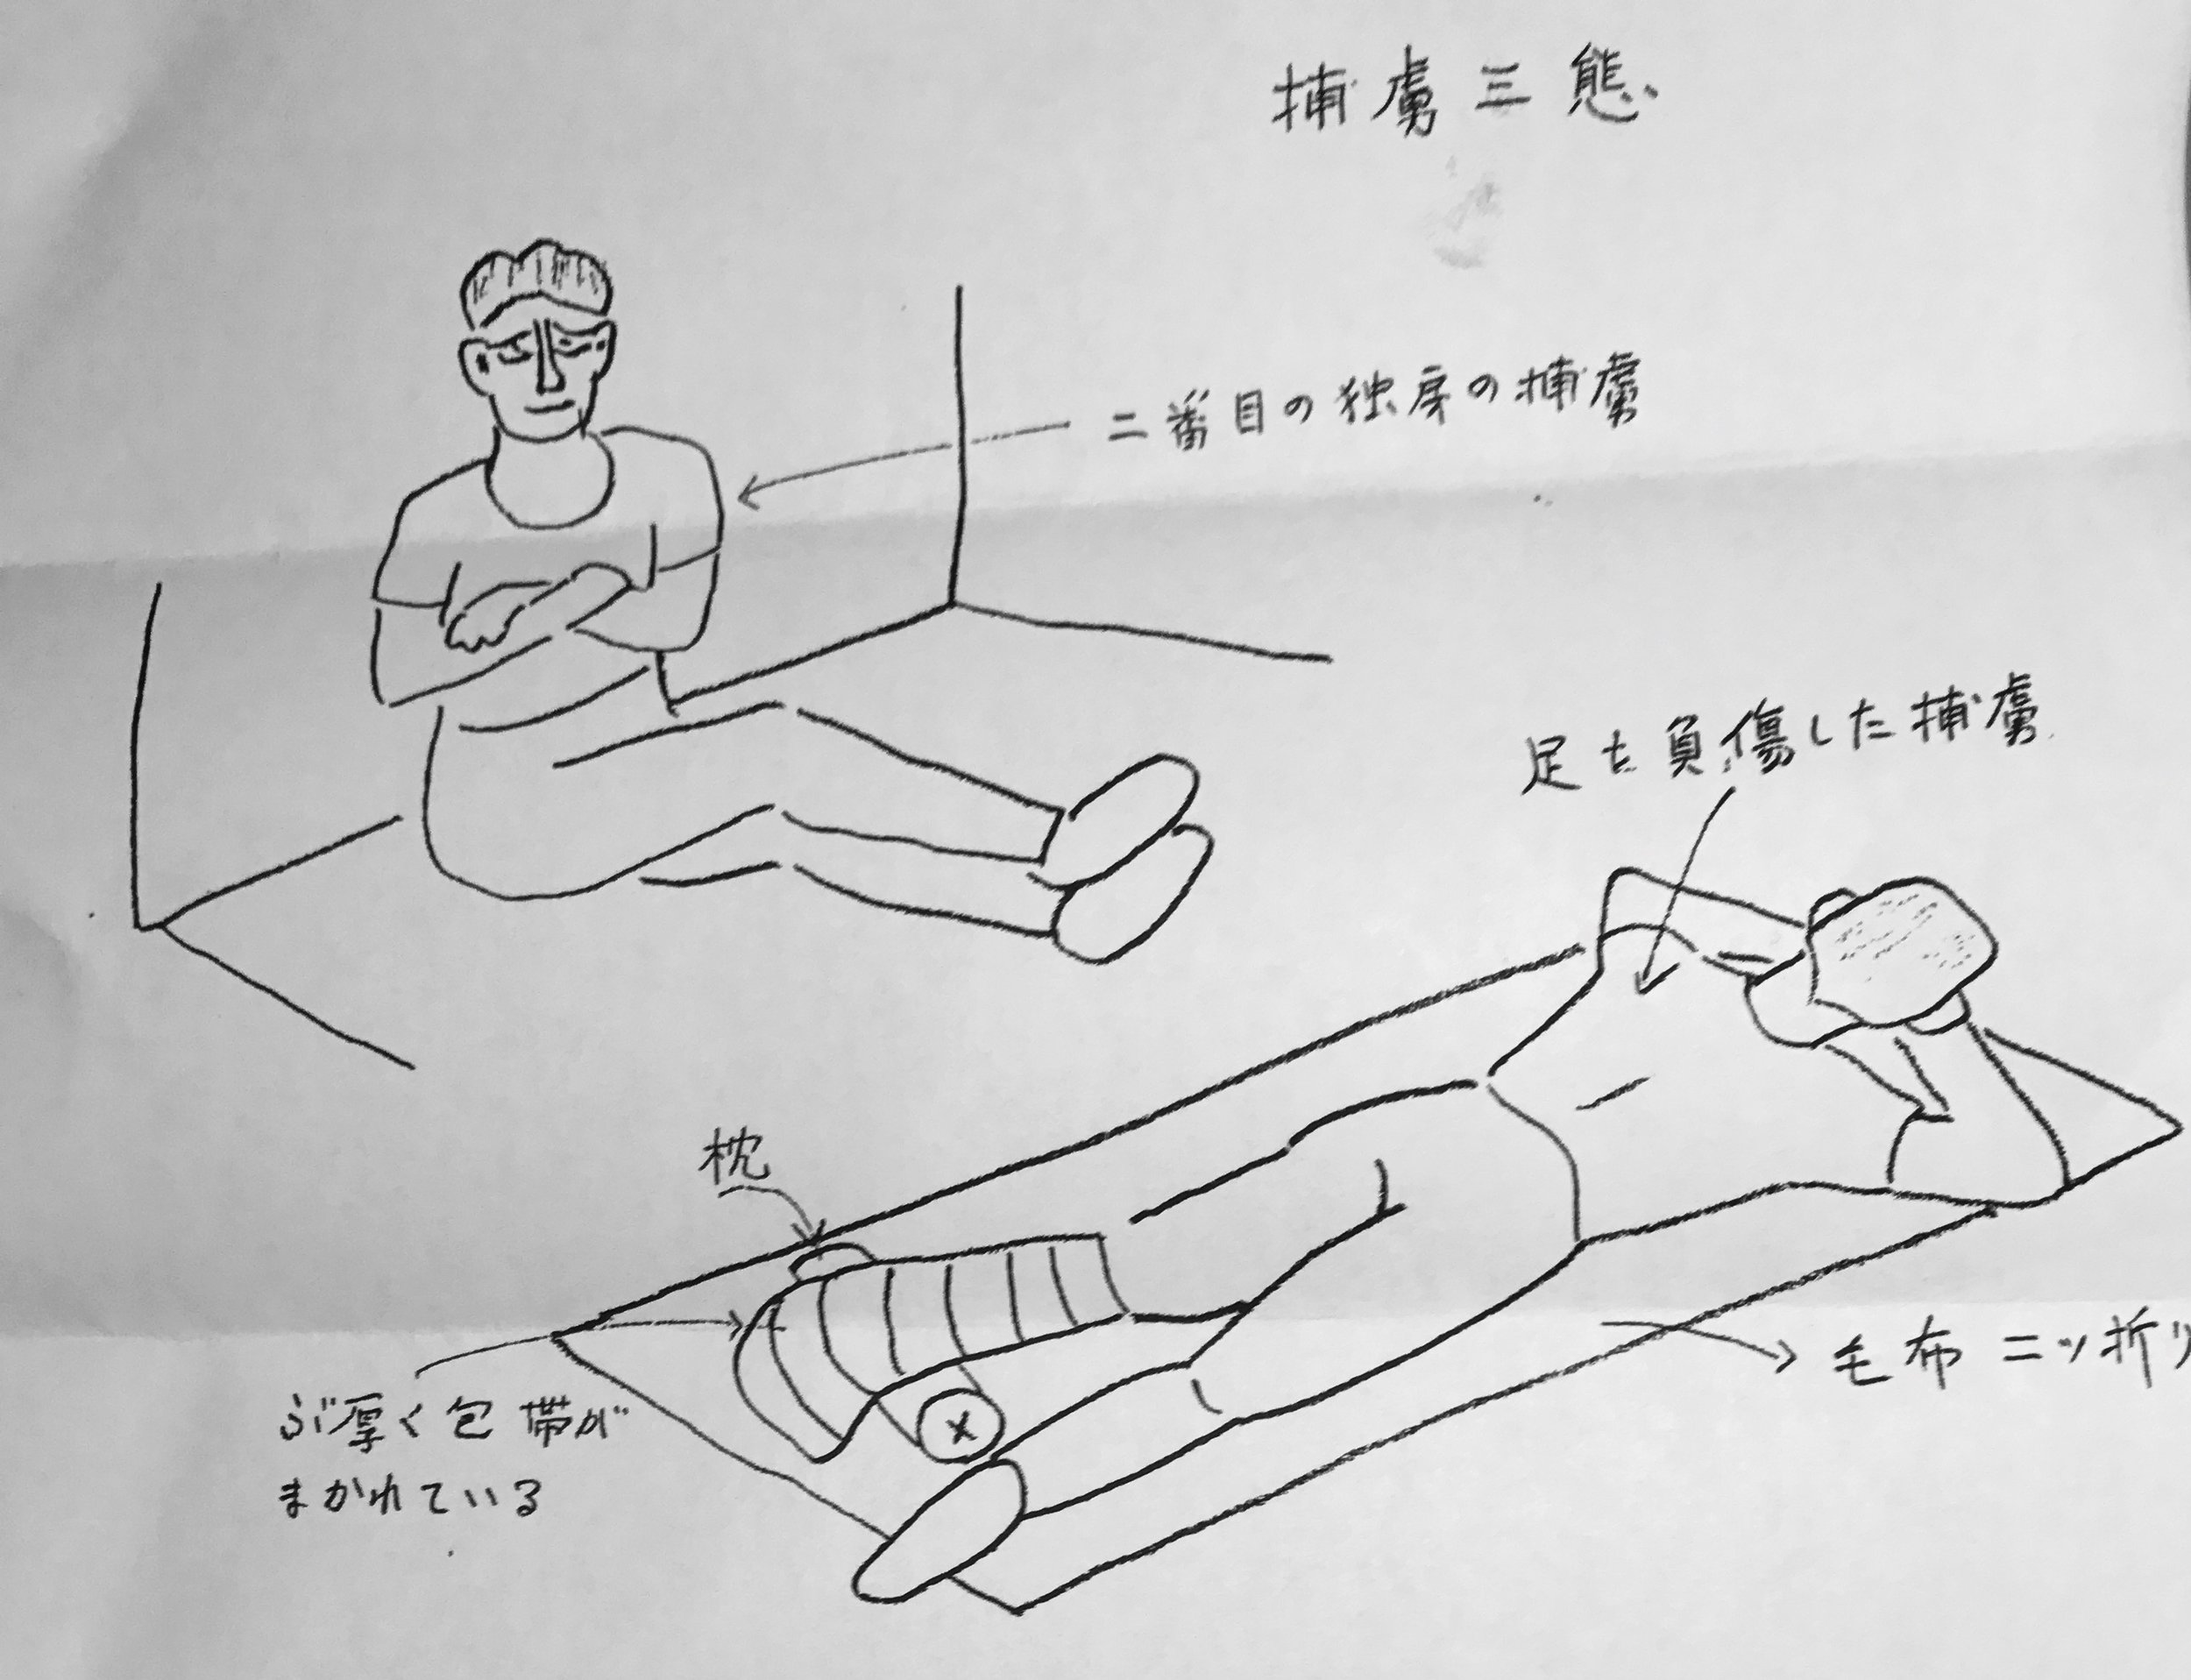 Sketch by Professor Akio Nakamura of two of the American POWs he saw in the Chugoku MP Headquarters on 5 August, 1945.The lower figure with the injured leg is most likely Durden Looper, who was known to have a leg injury. (Editor's note: Tom Cartwright believed them to be Hugh Atkinson, sitting, and James Ryan on the pallet with an injured foot.) Professor Nakamura's father was at the time a child, the son of Lt. Col. Shigeo Nakamura the commanding officer of the MP HQ. He, too, perished in the bombing. (Courtesy Dr. Akio Nakamura.)